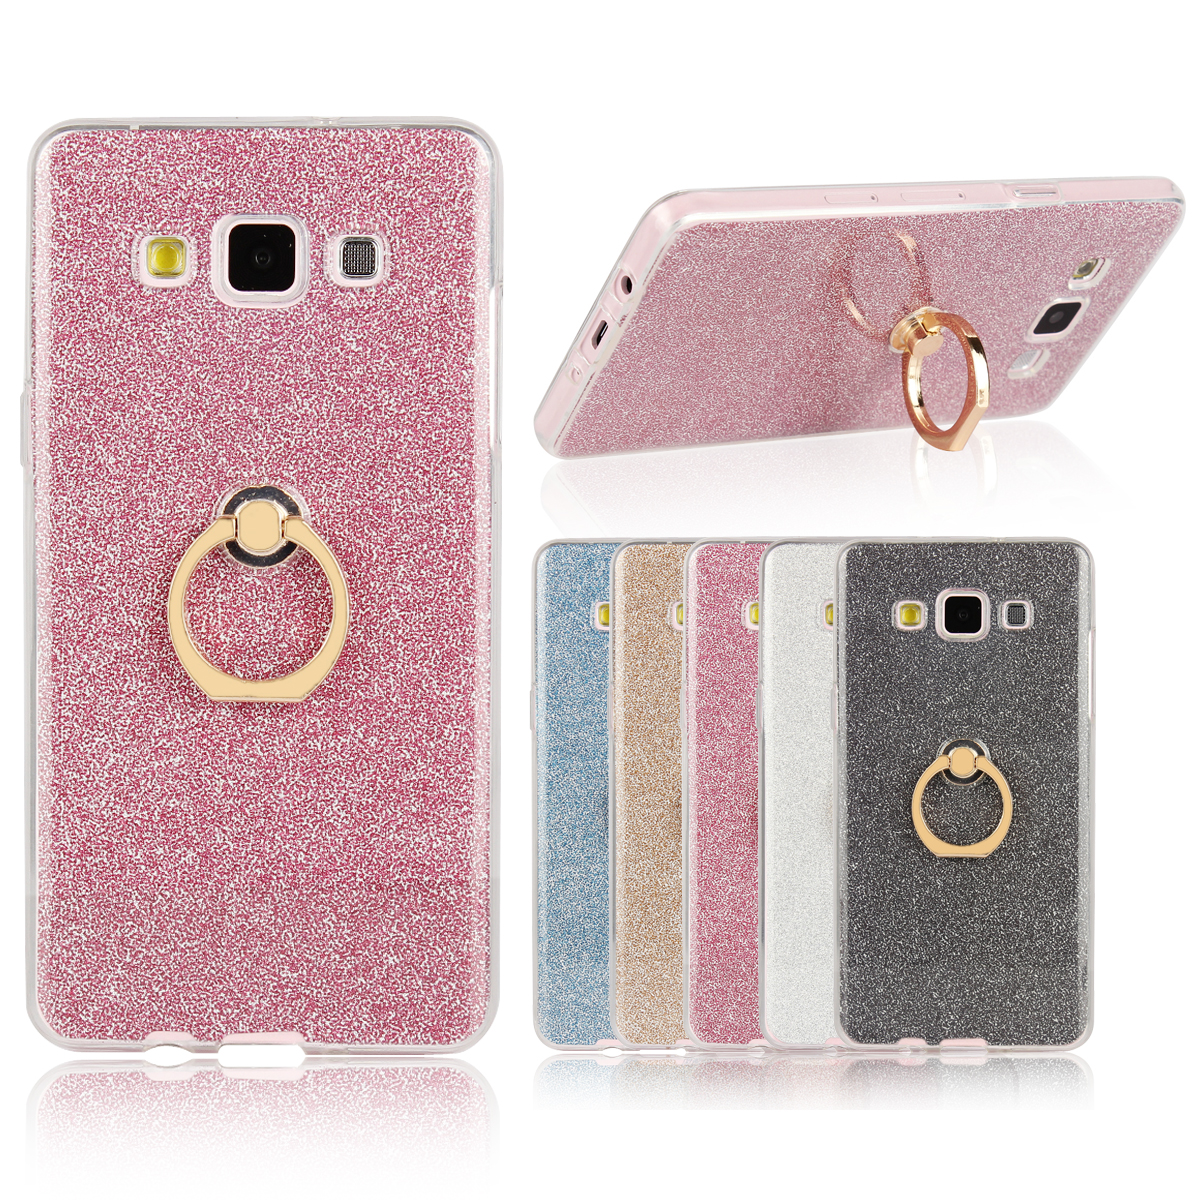 Case for Samsung Galaxy A5 a 5 Flash powder TPU Case for Samsung A 5 2015 A500F A500FU A500M/Y/YZ/FQ/F1/K/S Finger buckle Phone